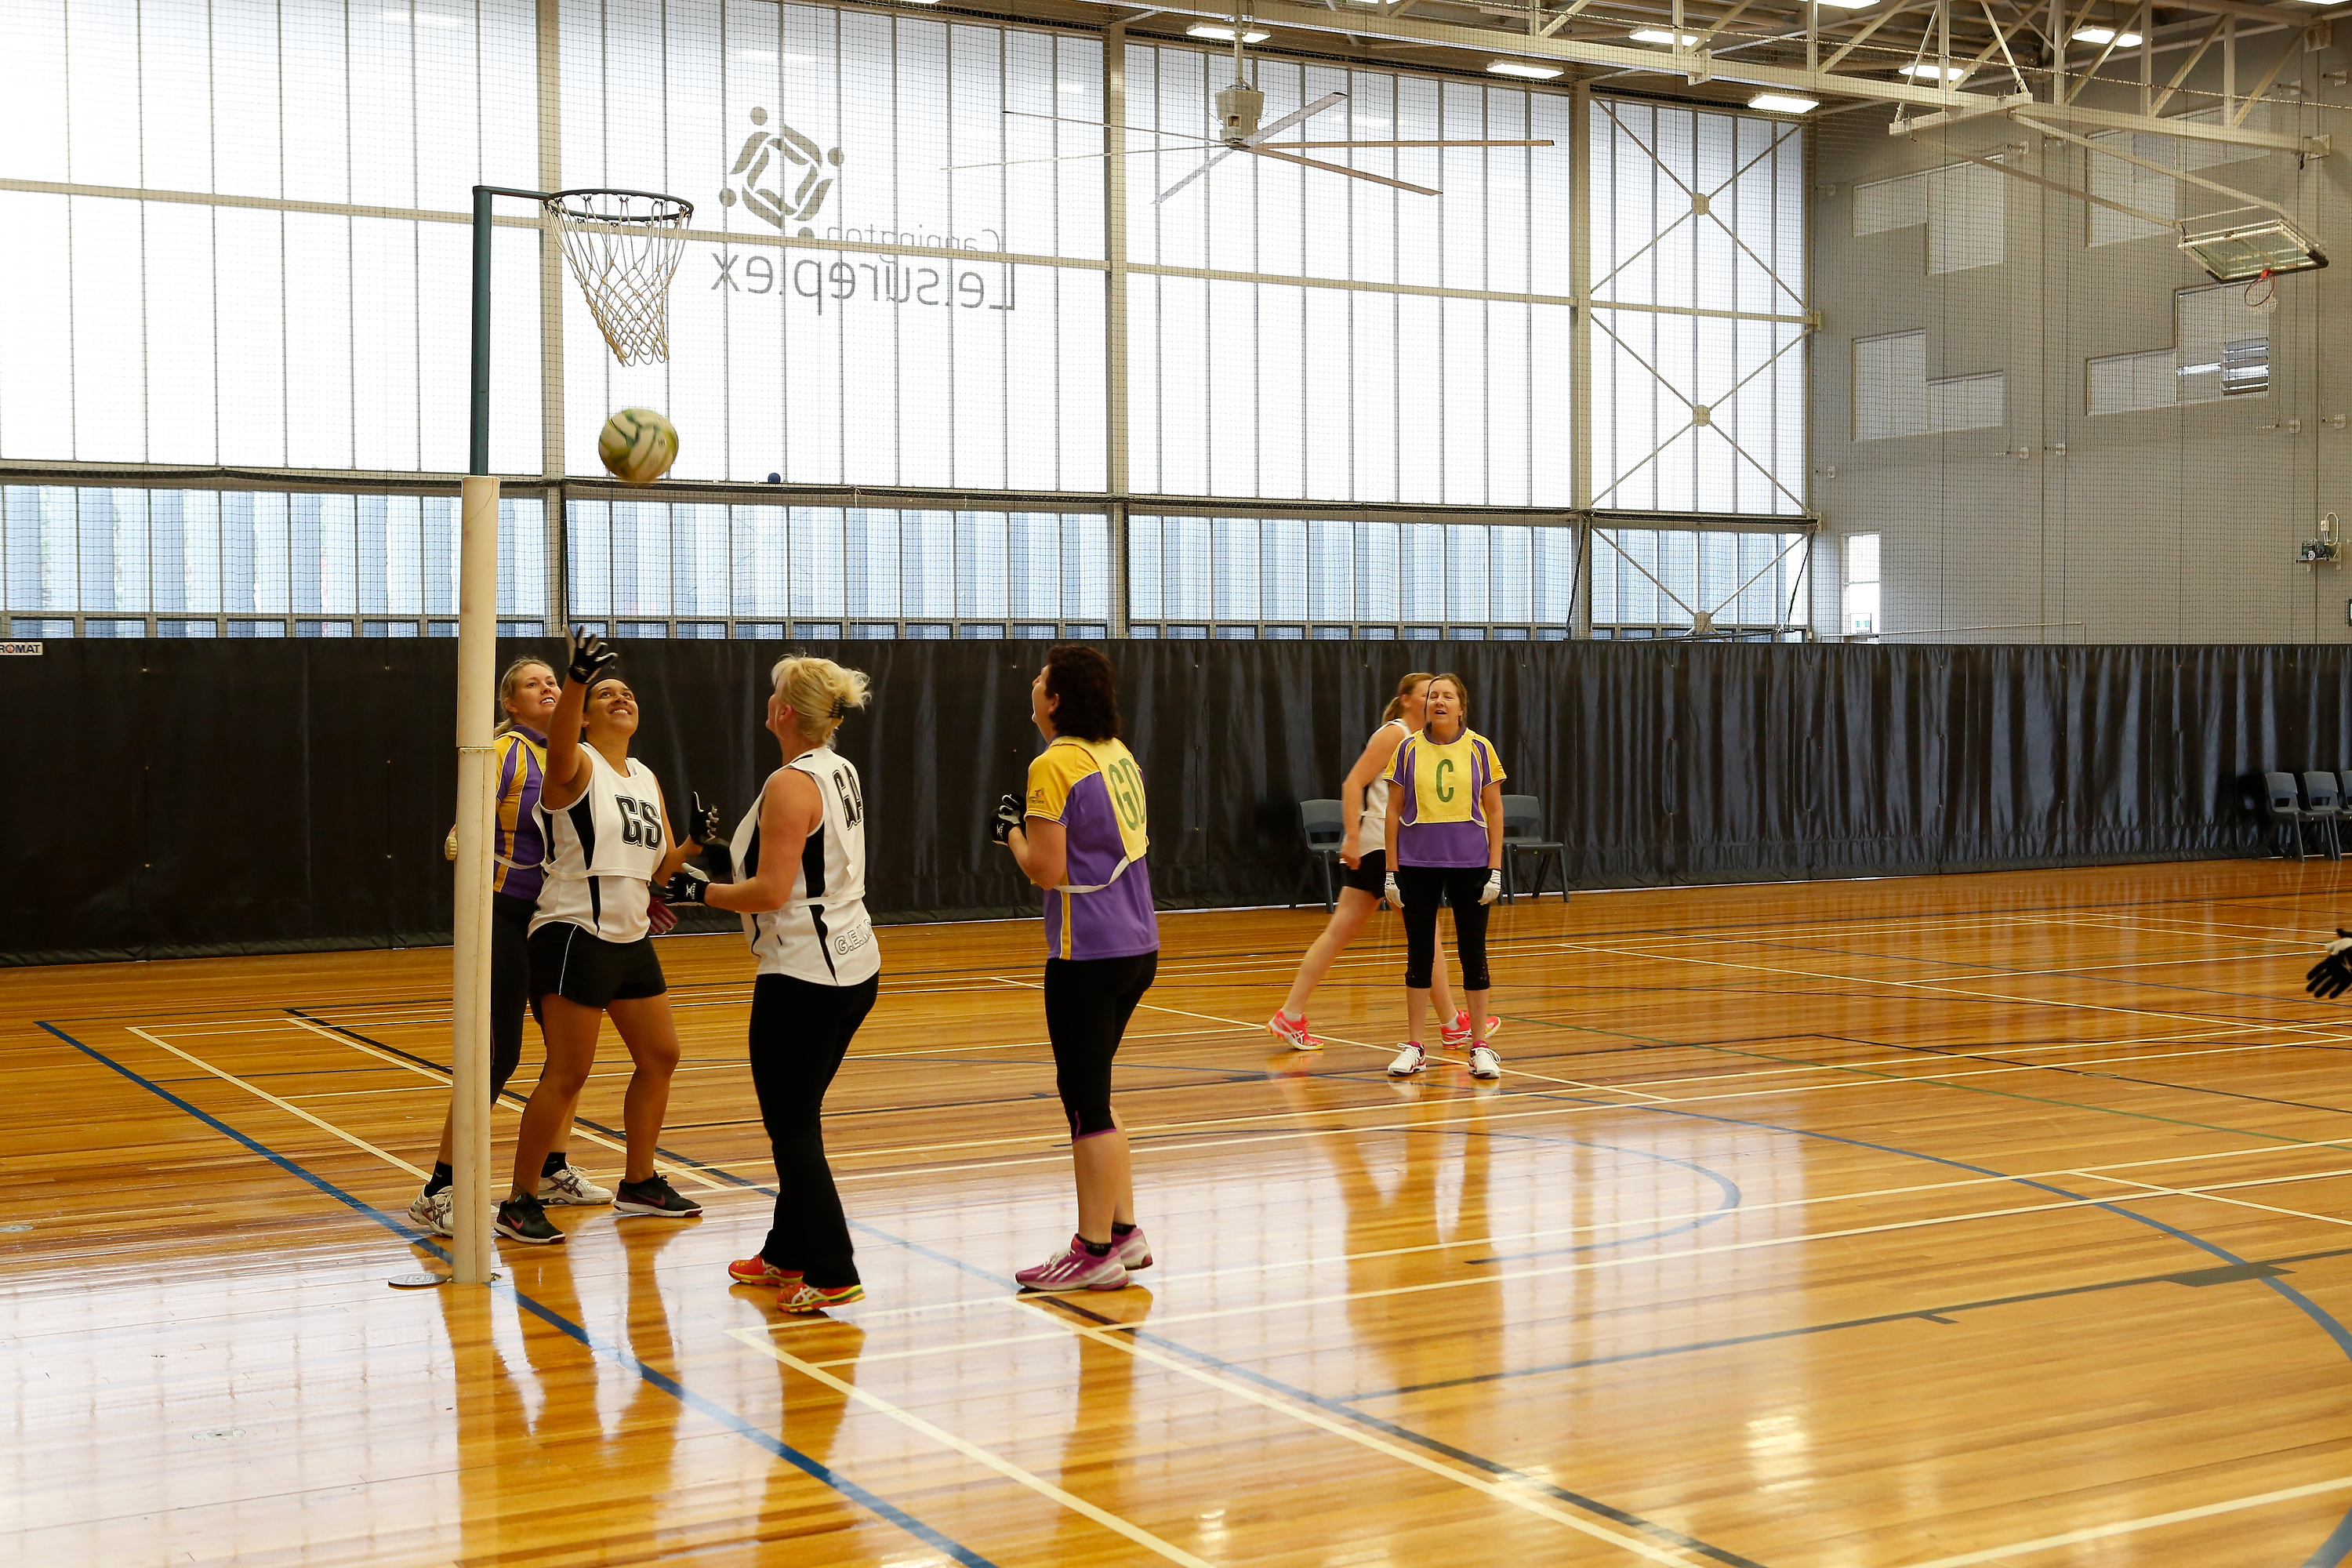 City Of Canning Hire A Court